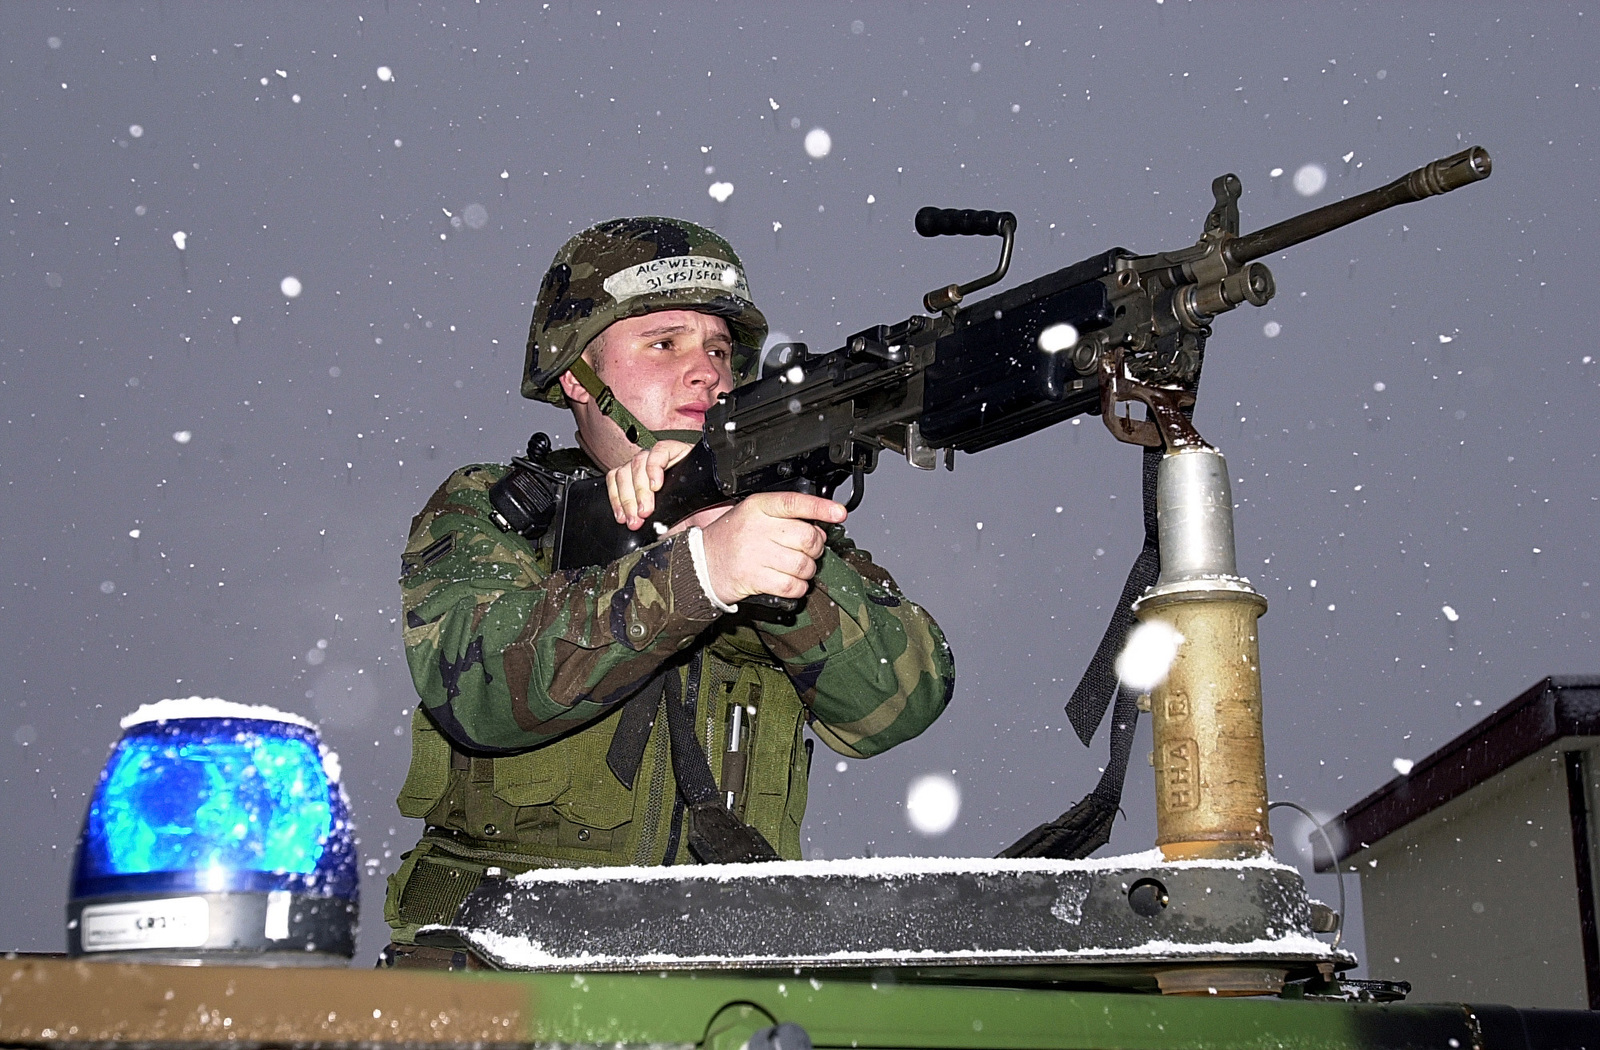 As the first major snowfall of the season covers Aviano Air Base (AB) in white, US Air Force (USAF) AIRMAN First Class (A1C) Brian Hirsch, 31st Security Forces Squadron (SFS) maintains security cover with a FNMI 5.56 mm M249 Squad Automatic Weapon (SAW) at Aviano's main gate